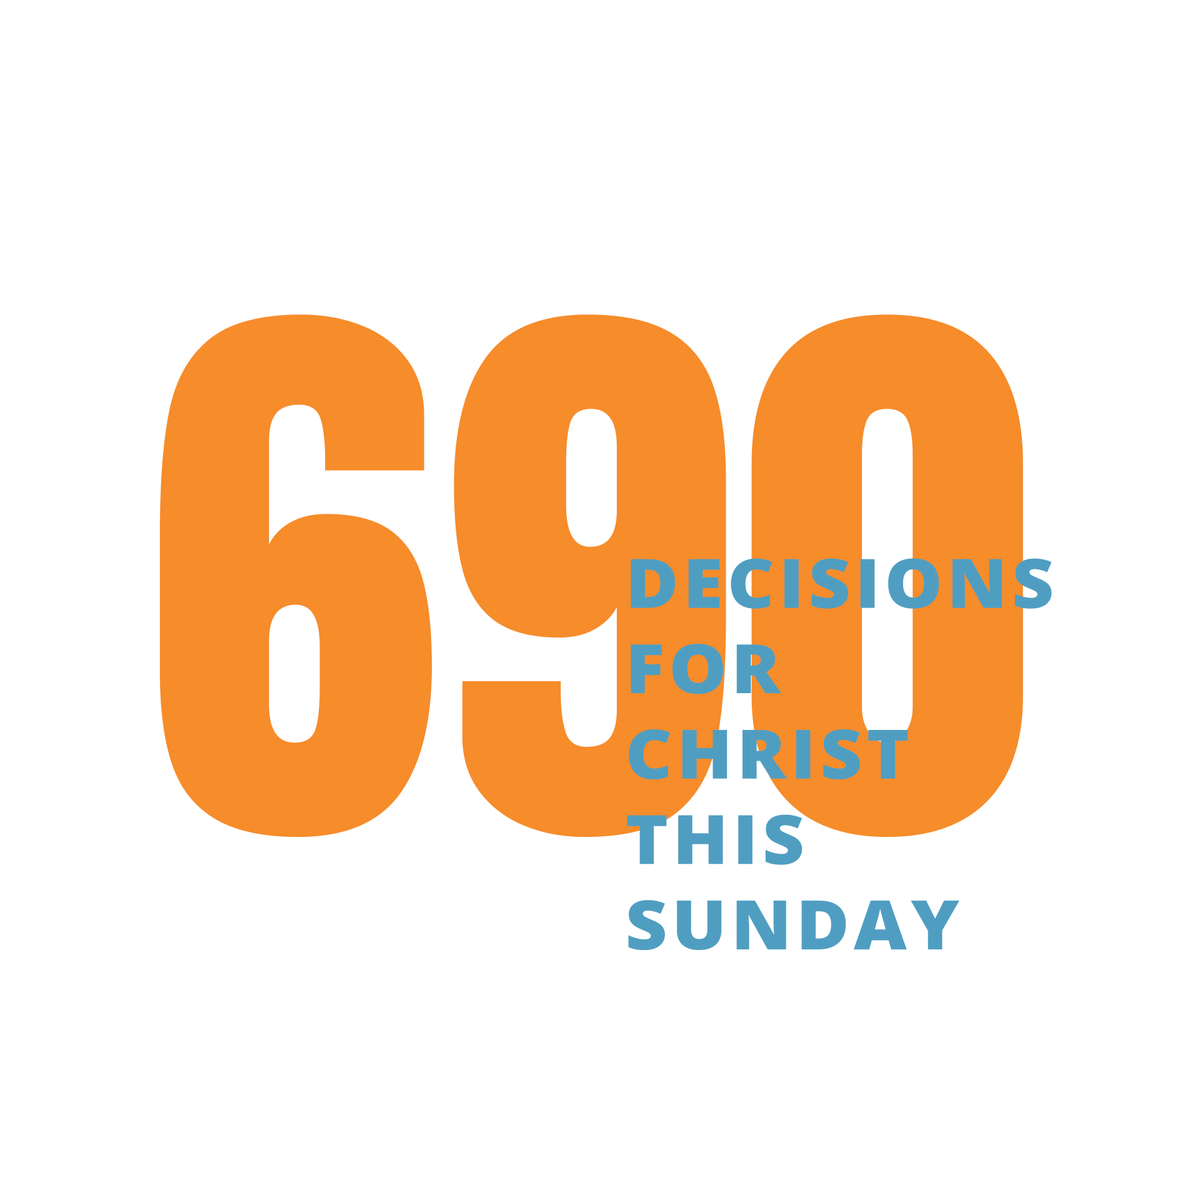 690 people made decisions for Christ during our Sunday services this weekend!